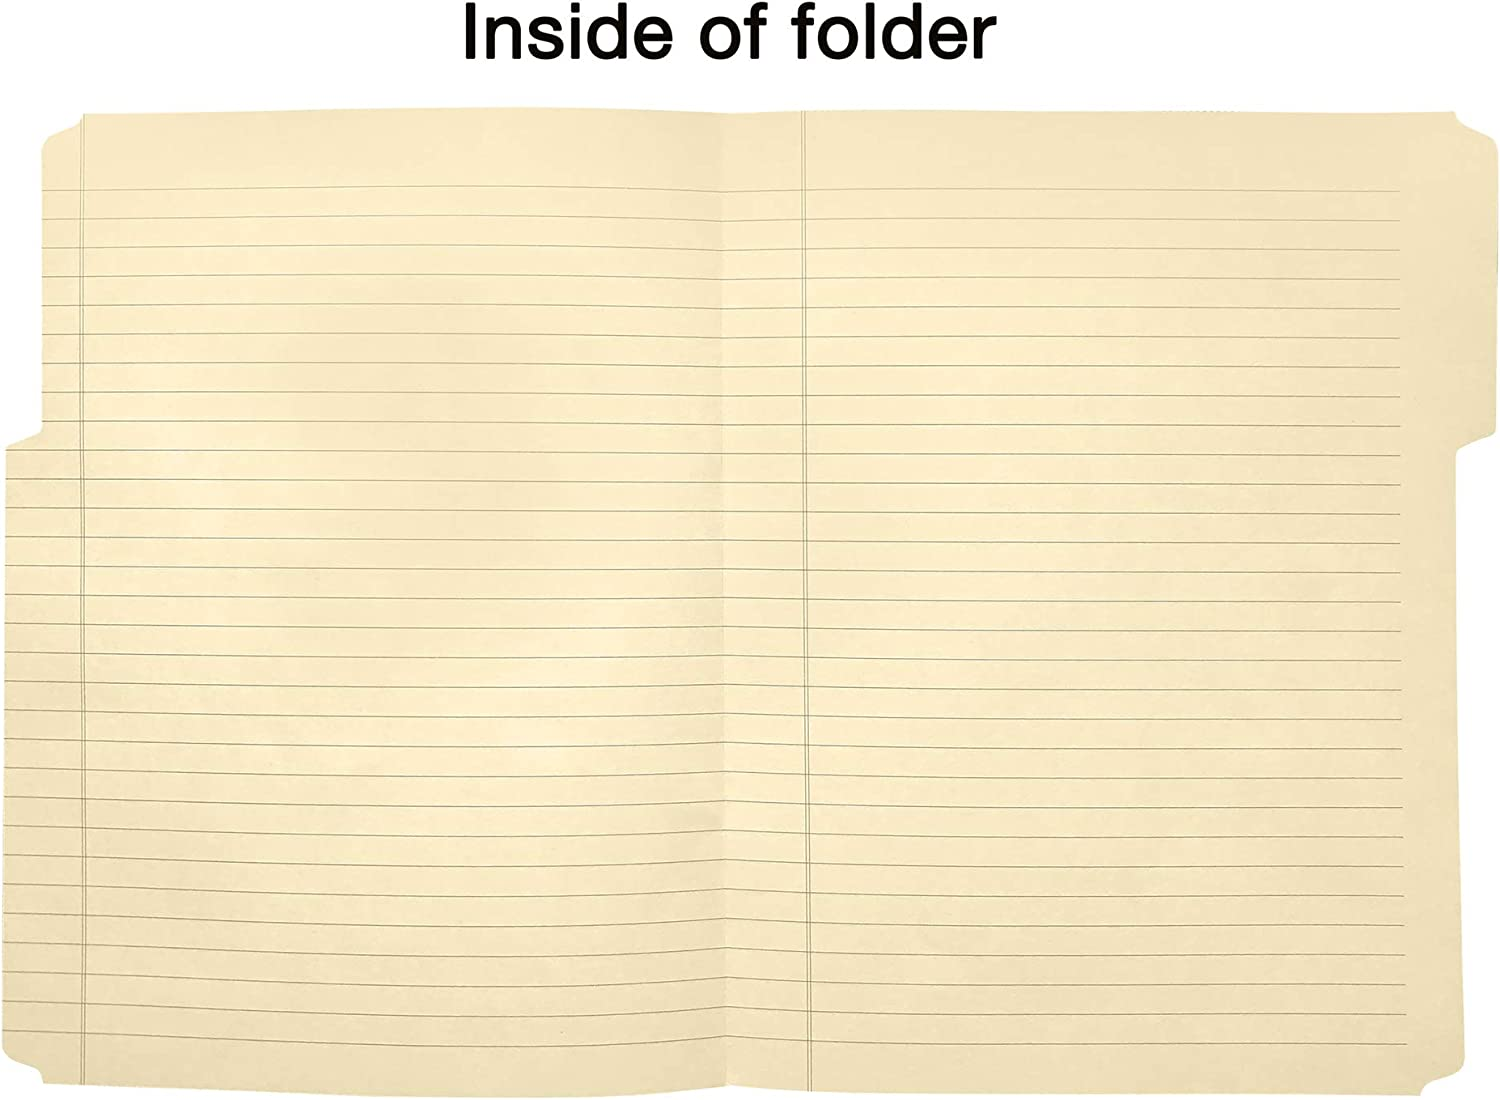 Find It Combination File Folder Note Pad, 9-1/2 x 12-1/2 Inches, Manila (FT07210) : Subject Notebooks : Office Products